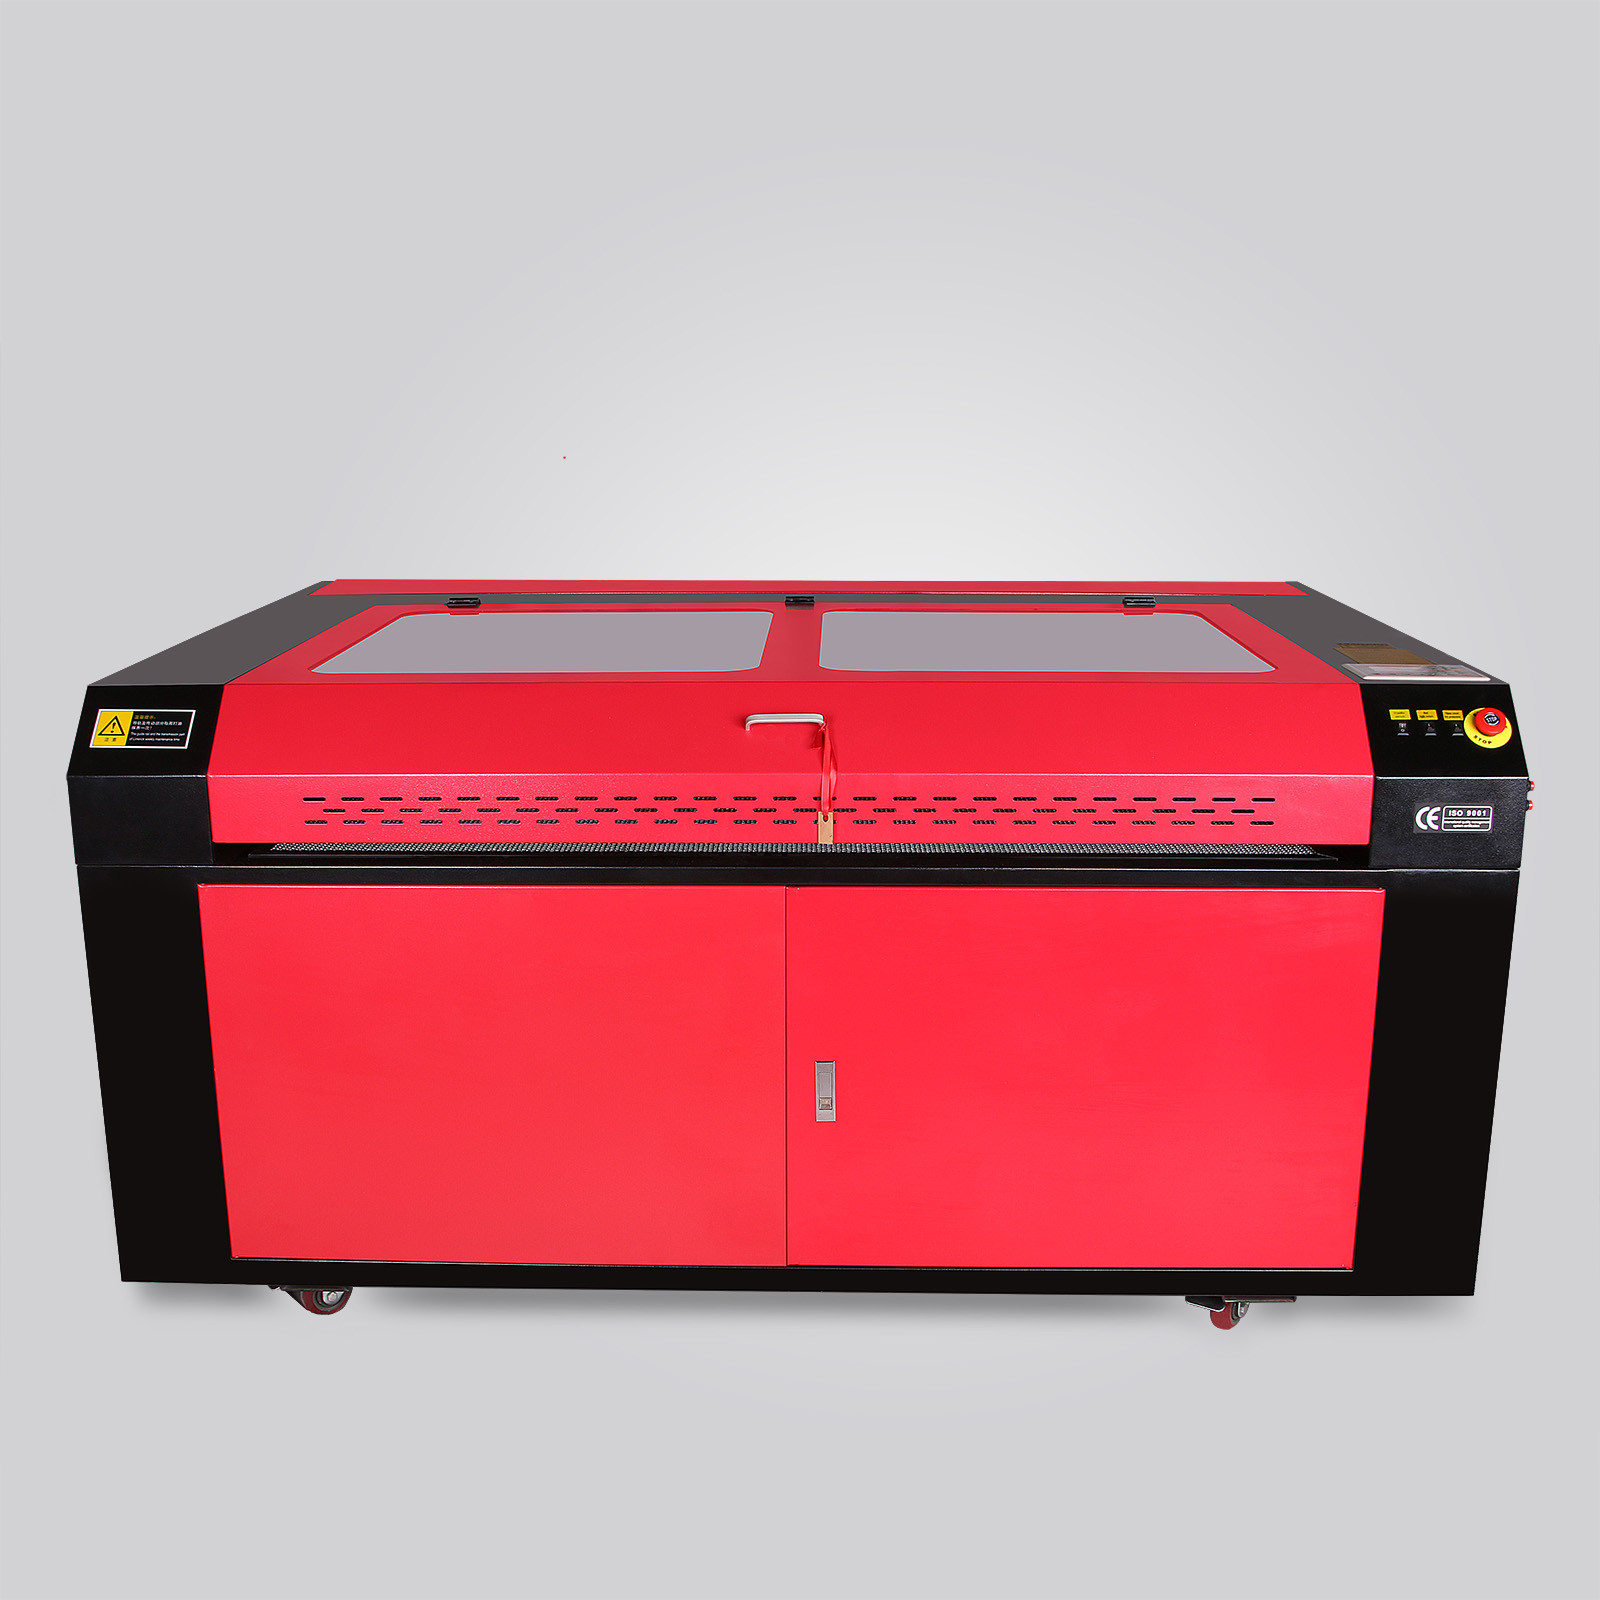 CO2-Usb-Laser-Engraving-Cutting-Machine-Engraver-Cutter-Air-Assist-Carving thumbnail 73